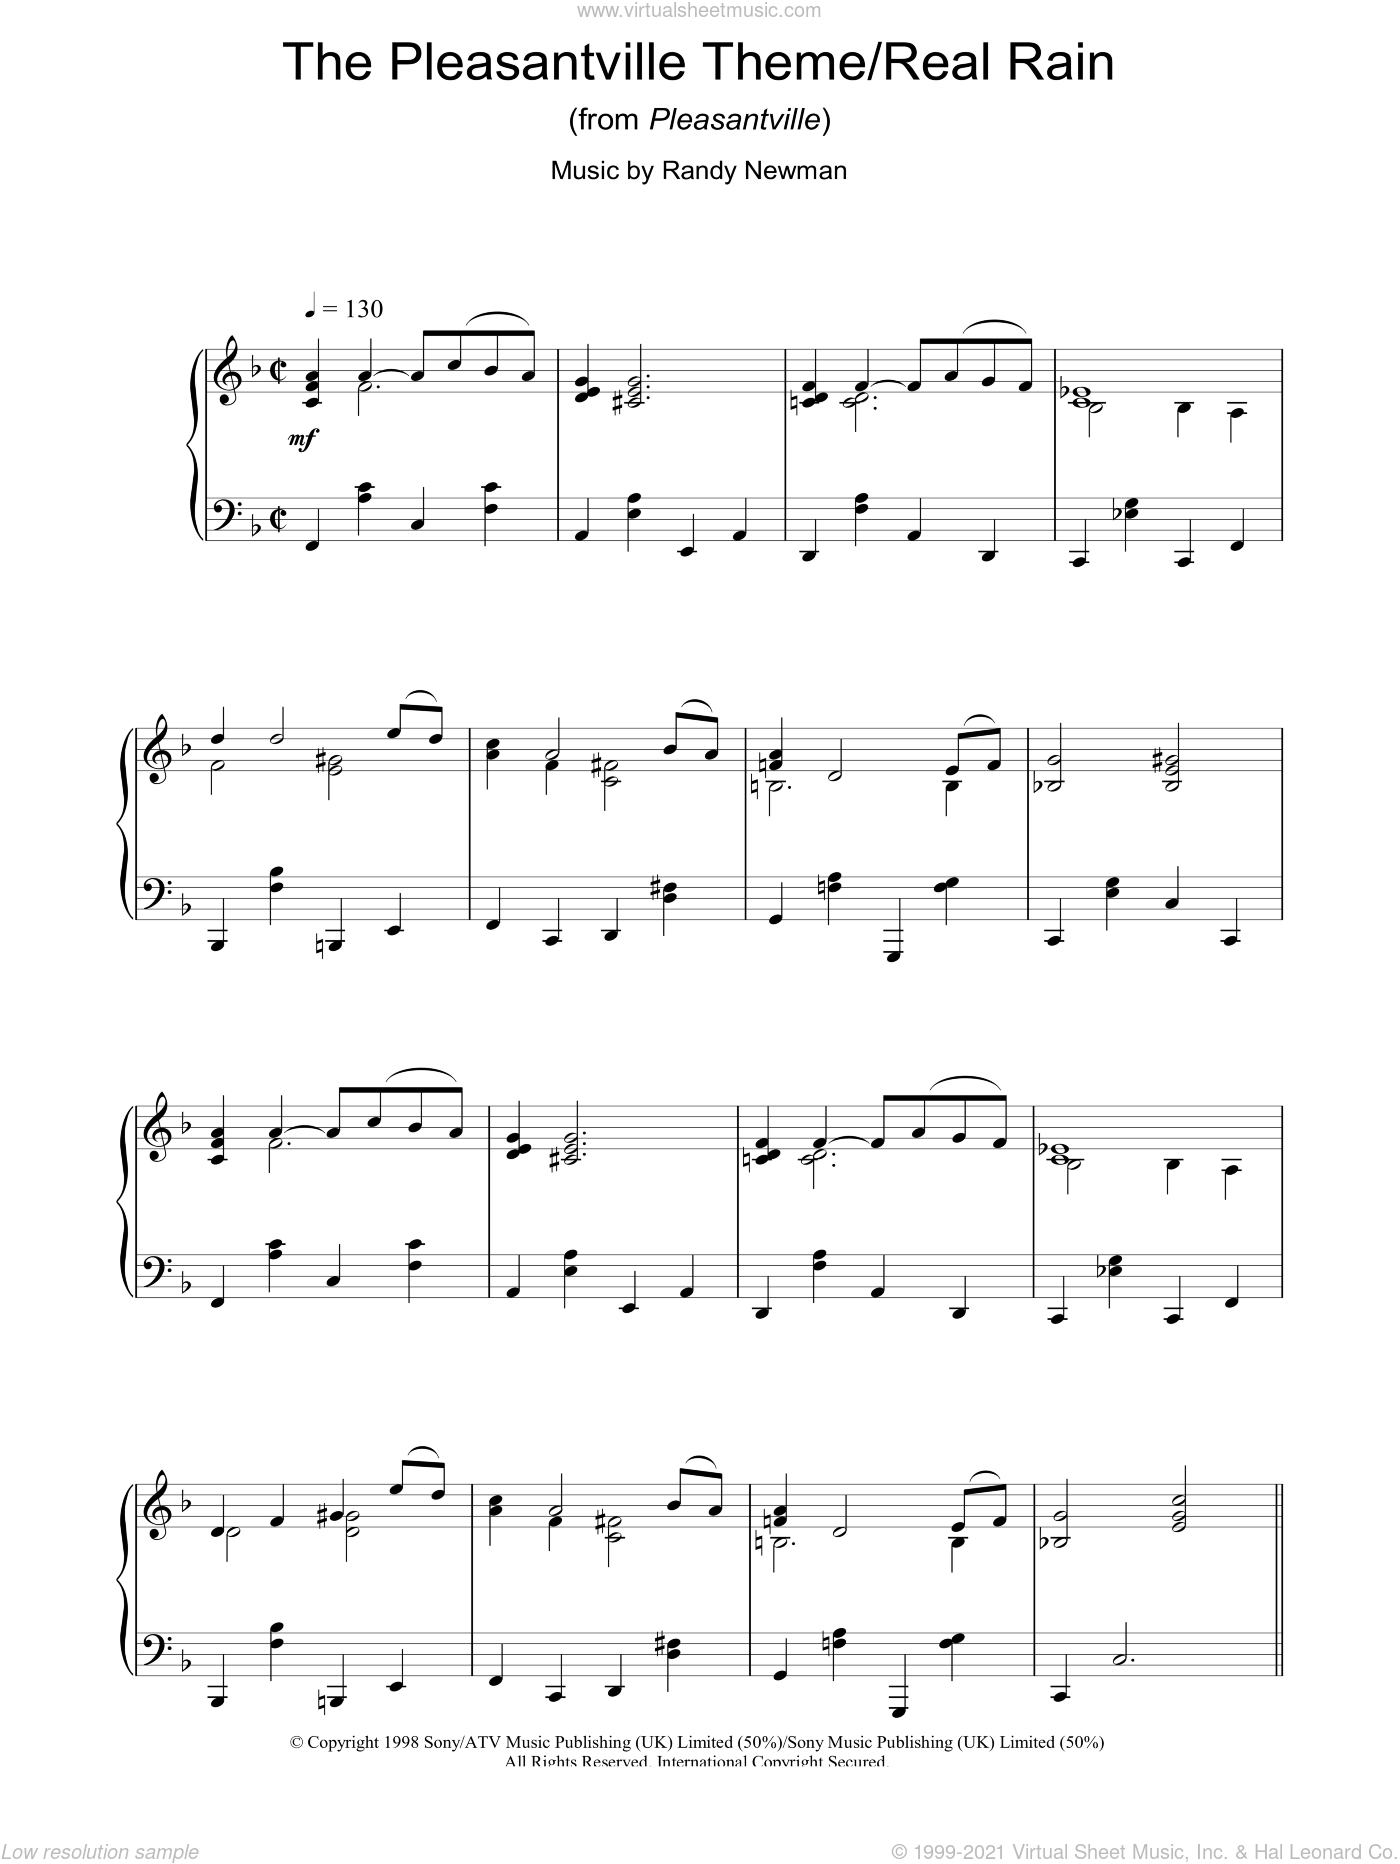 The Pleasantville Theme/Real Rain (from Pleasantville) sheet music for piano solo by Randy Newman, intermediate skill level